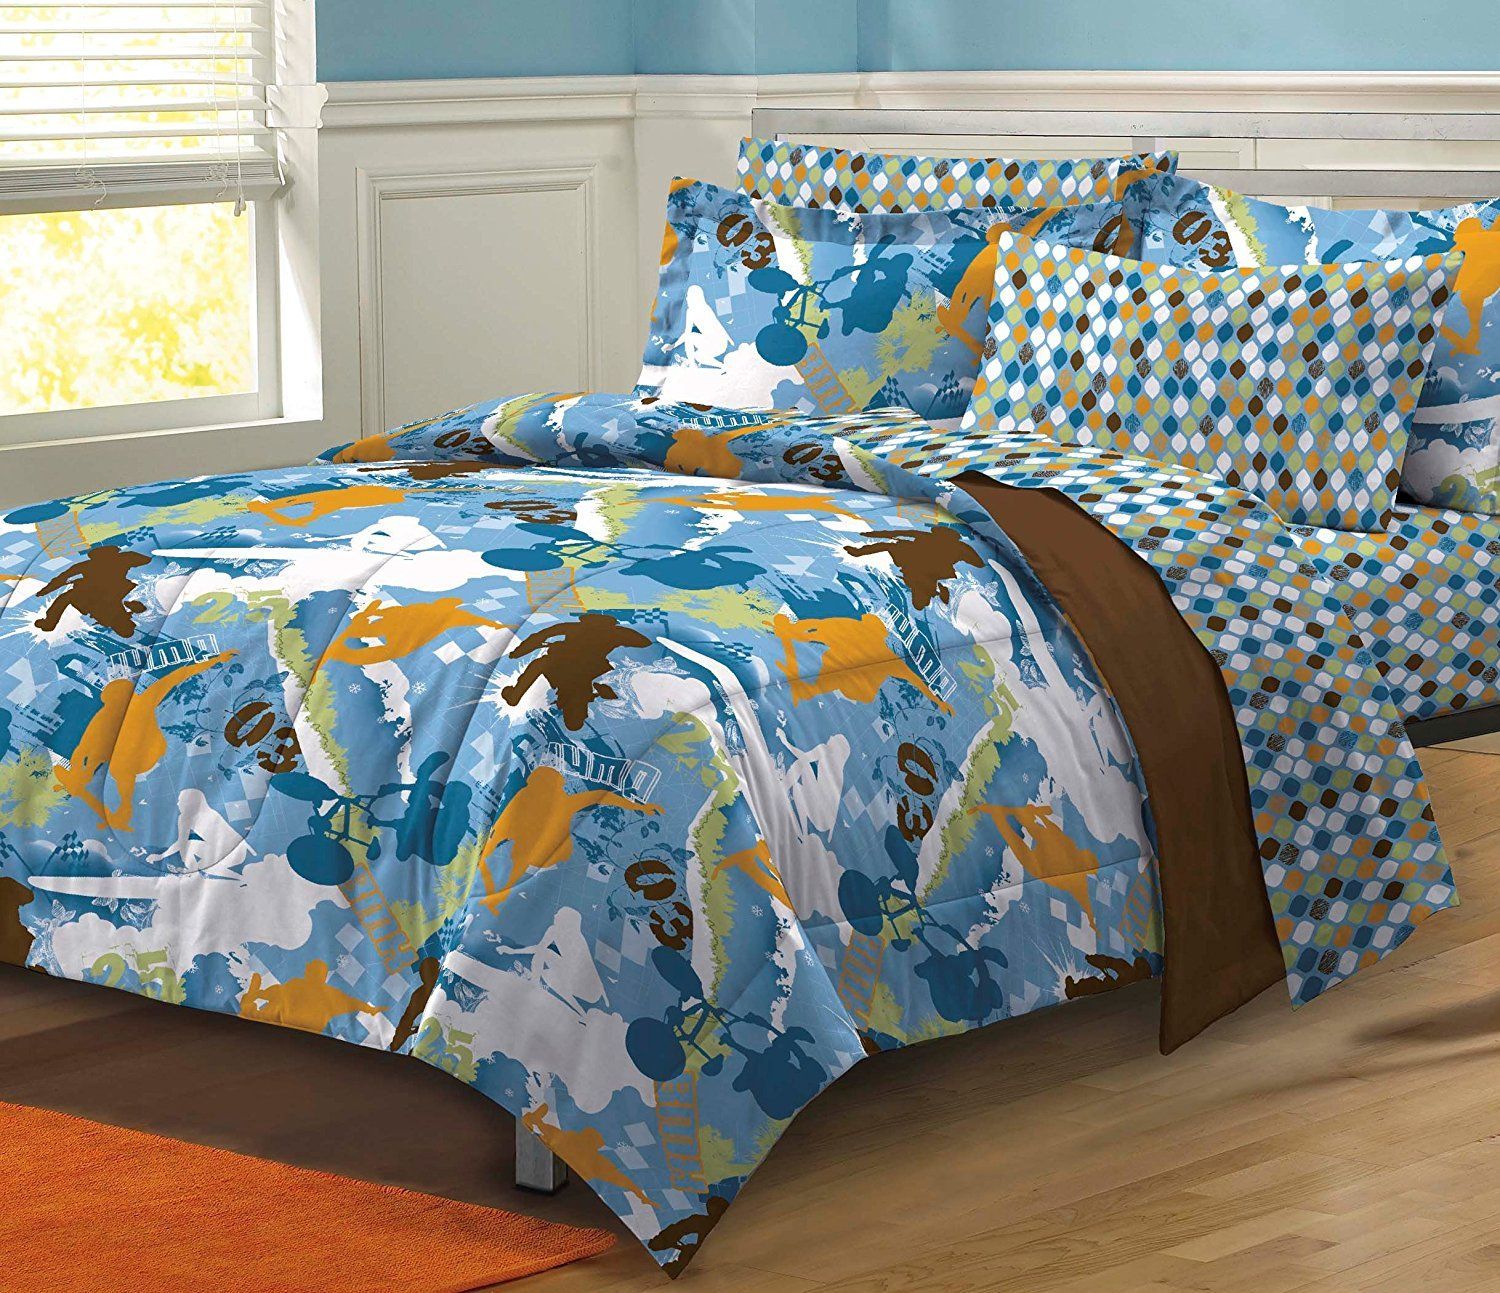 set boys comforterboys ideas tractor kids for full sizeboys of teen bedding size targetboys forts comforter photos neonddingboys unique sets